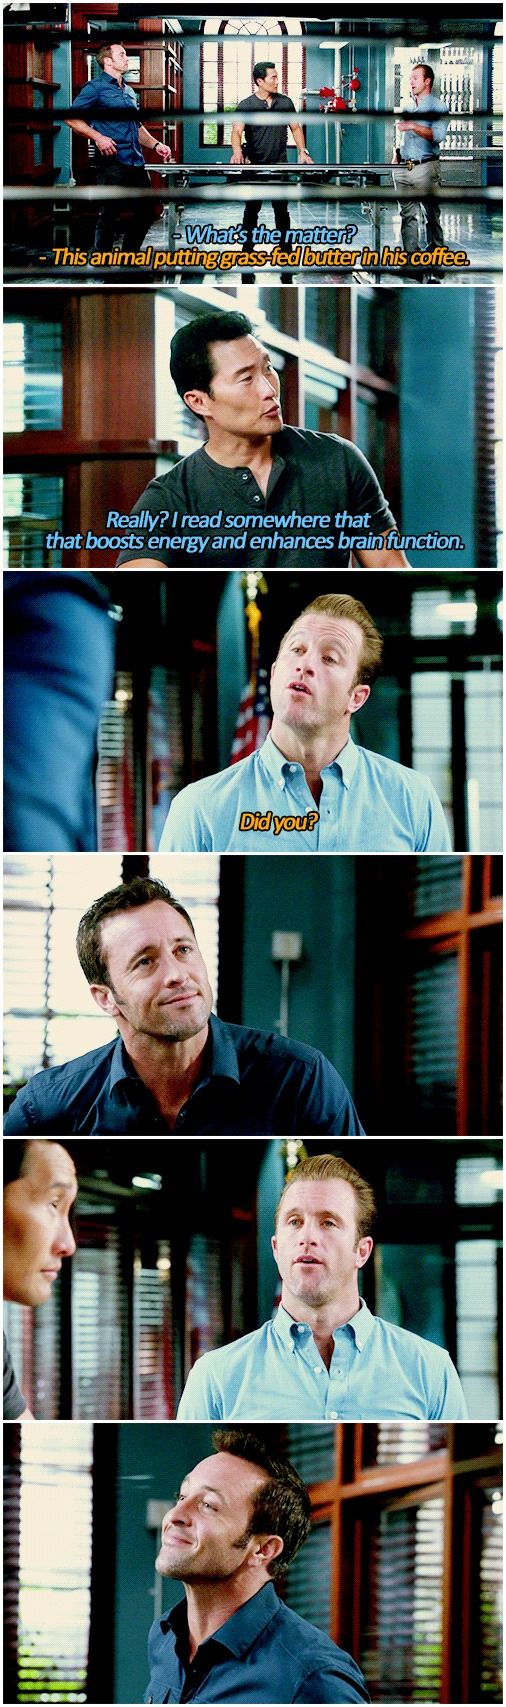 # MCDANNO # 5.15 # CHIN HO KELLY. Love the look on Steve's face